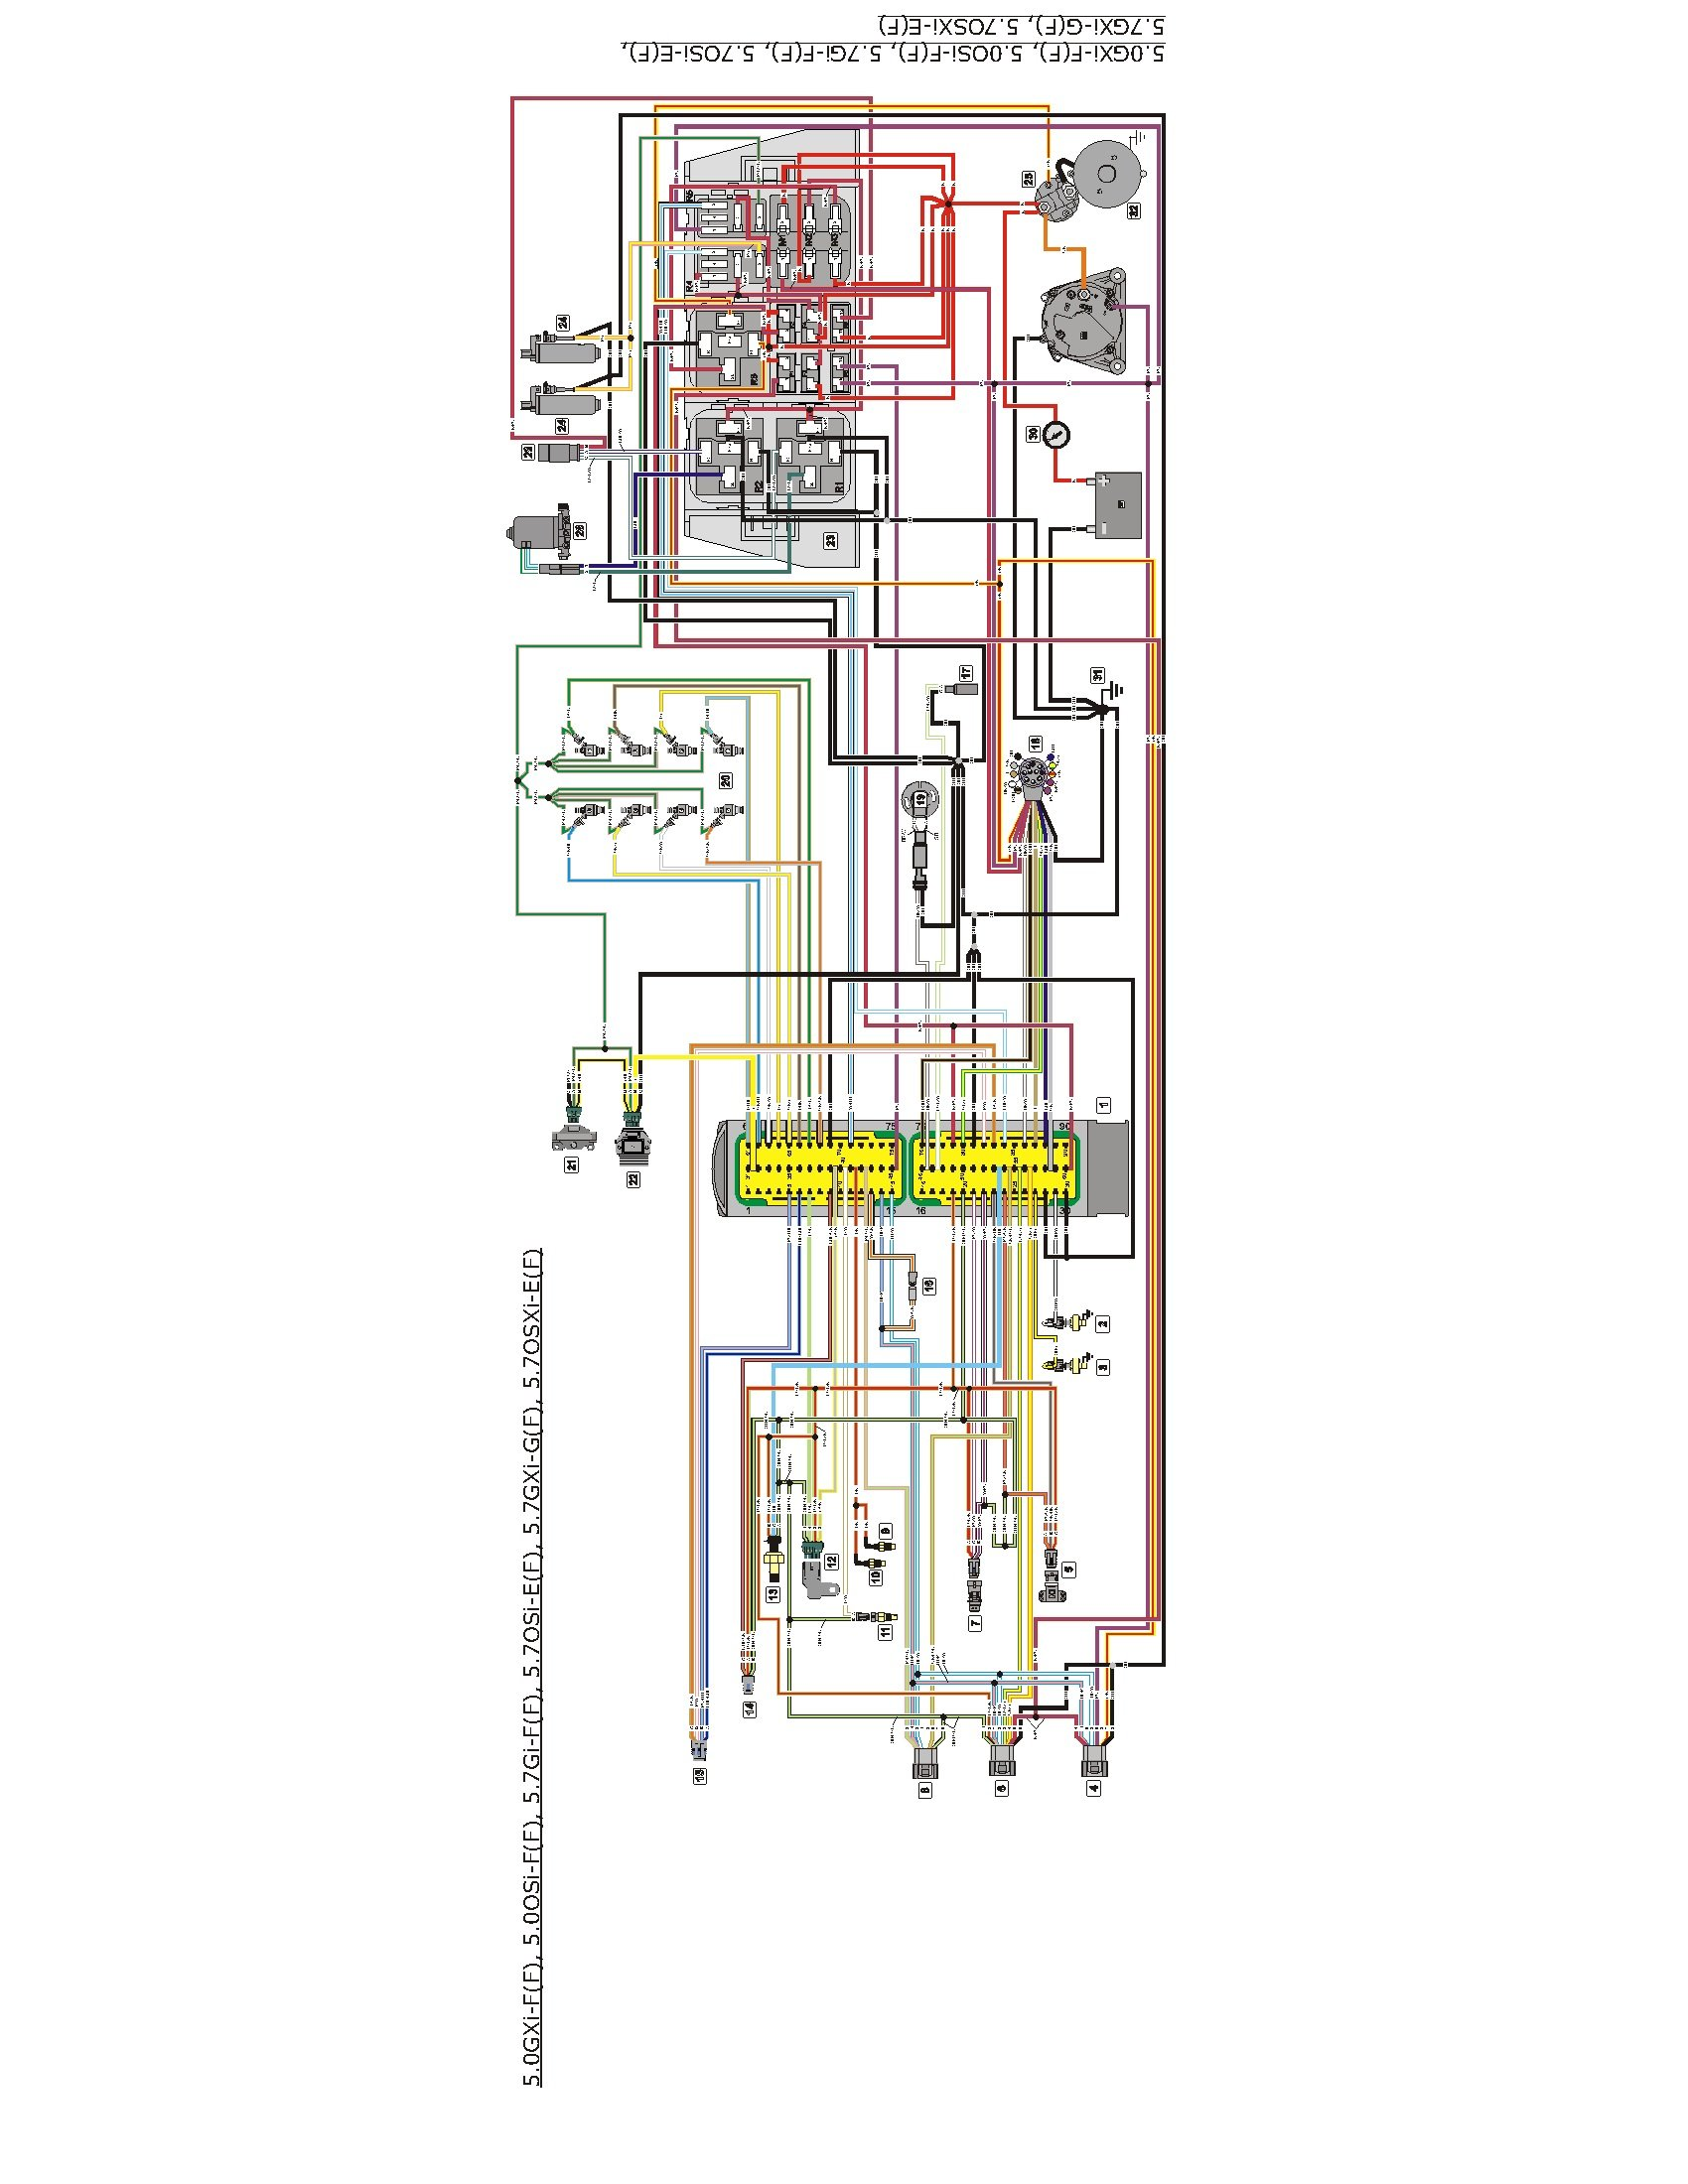 volvo penta marine wiring electrical wiring diagram guide One Wire GM Alternator Wiring